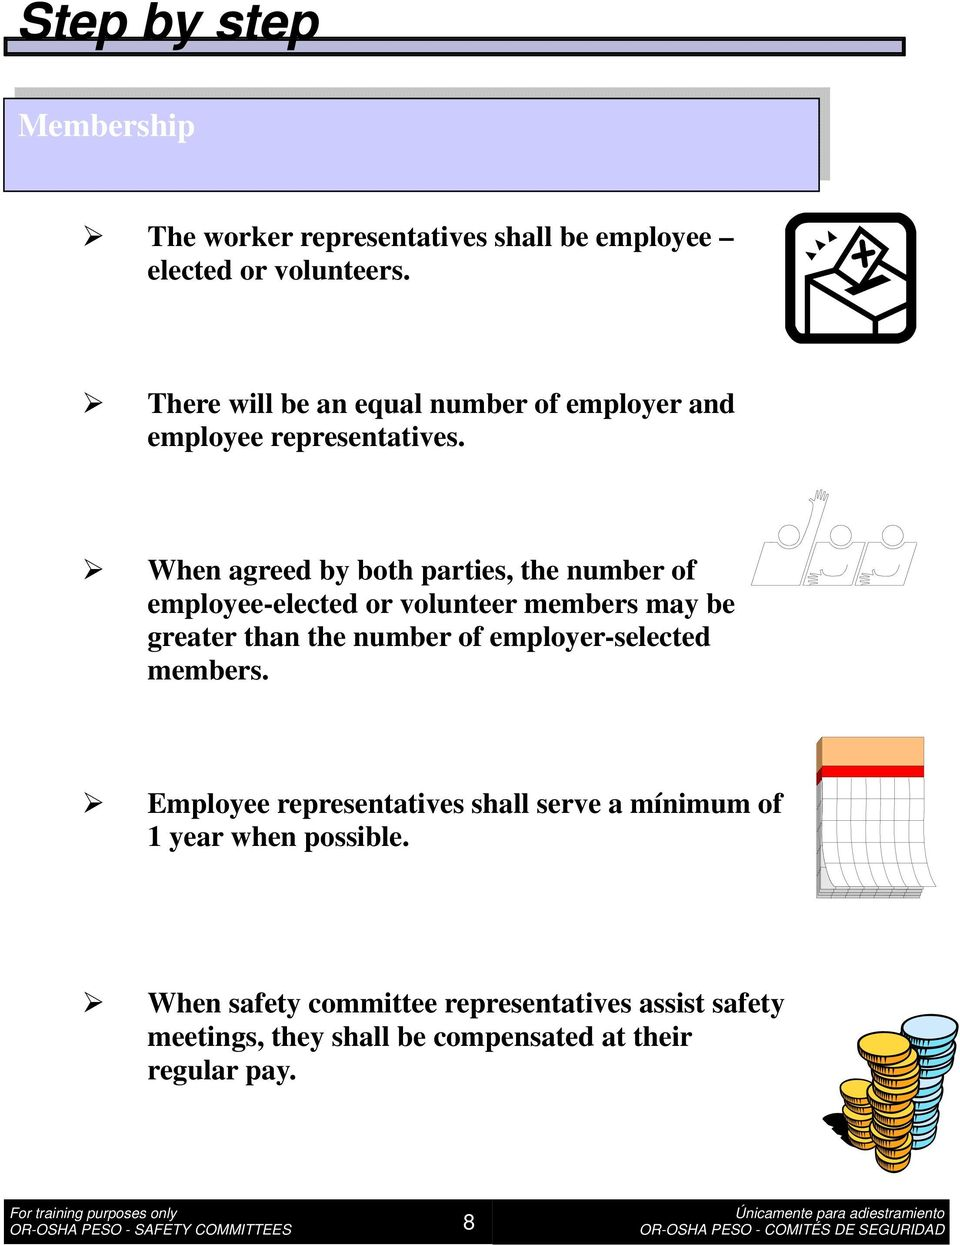 When agreed by both parties, the number of employee-elected or volunteer members may be greater than the number of